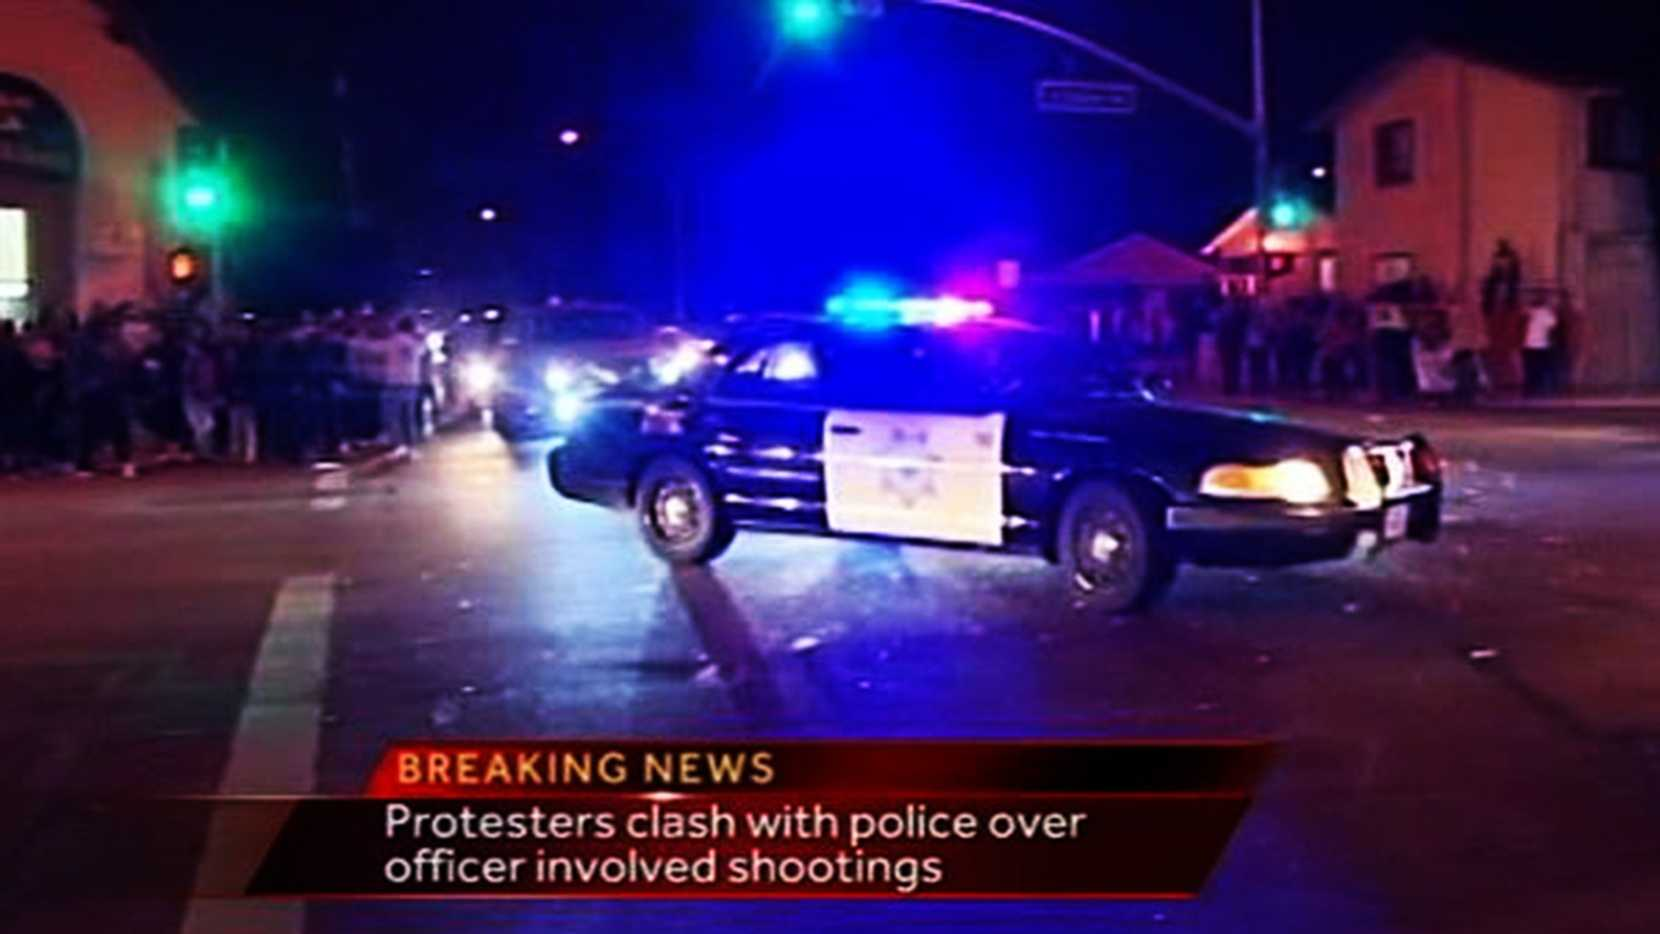 MAY 21, 2014: Paramedics and police were trying to help ConstantinoGarcia when demonstrators threw bottles, bricks, rocks, and other heavy objects at them. Garcia was still clinging to life when a officer began giving him CPR. Protesters hurled a bottle that hit the officer in the head, injuring him. Paramedics then rushed the victim into an ambulance so they could continue giving CPR.